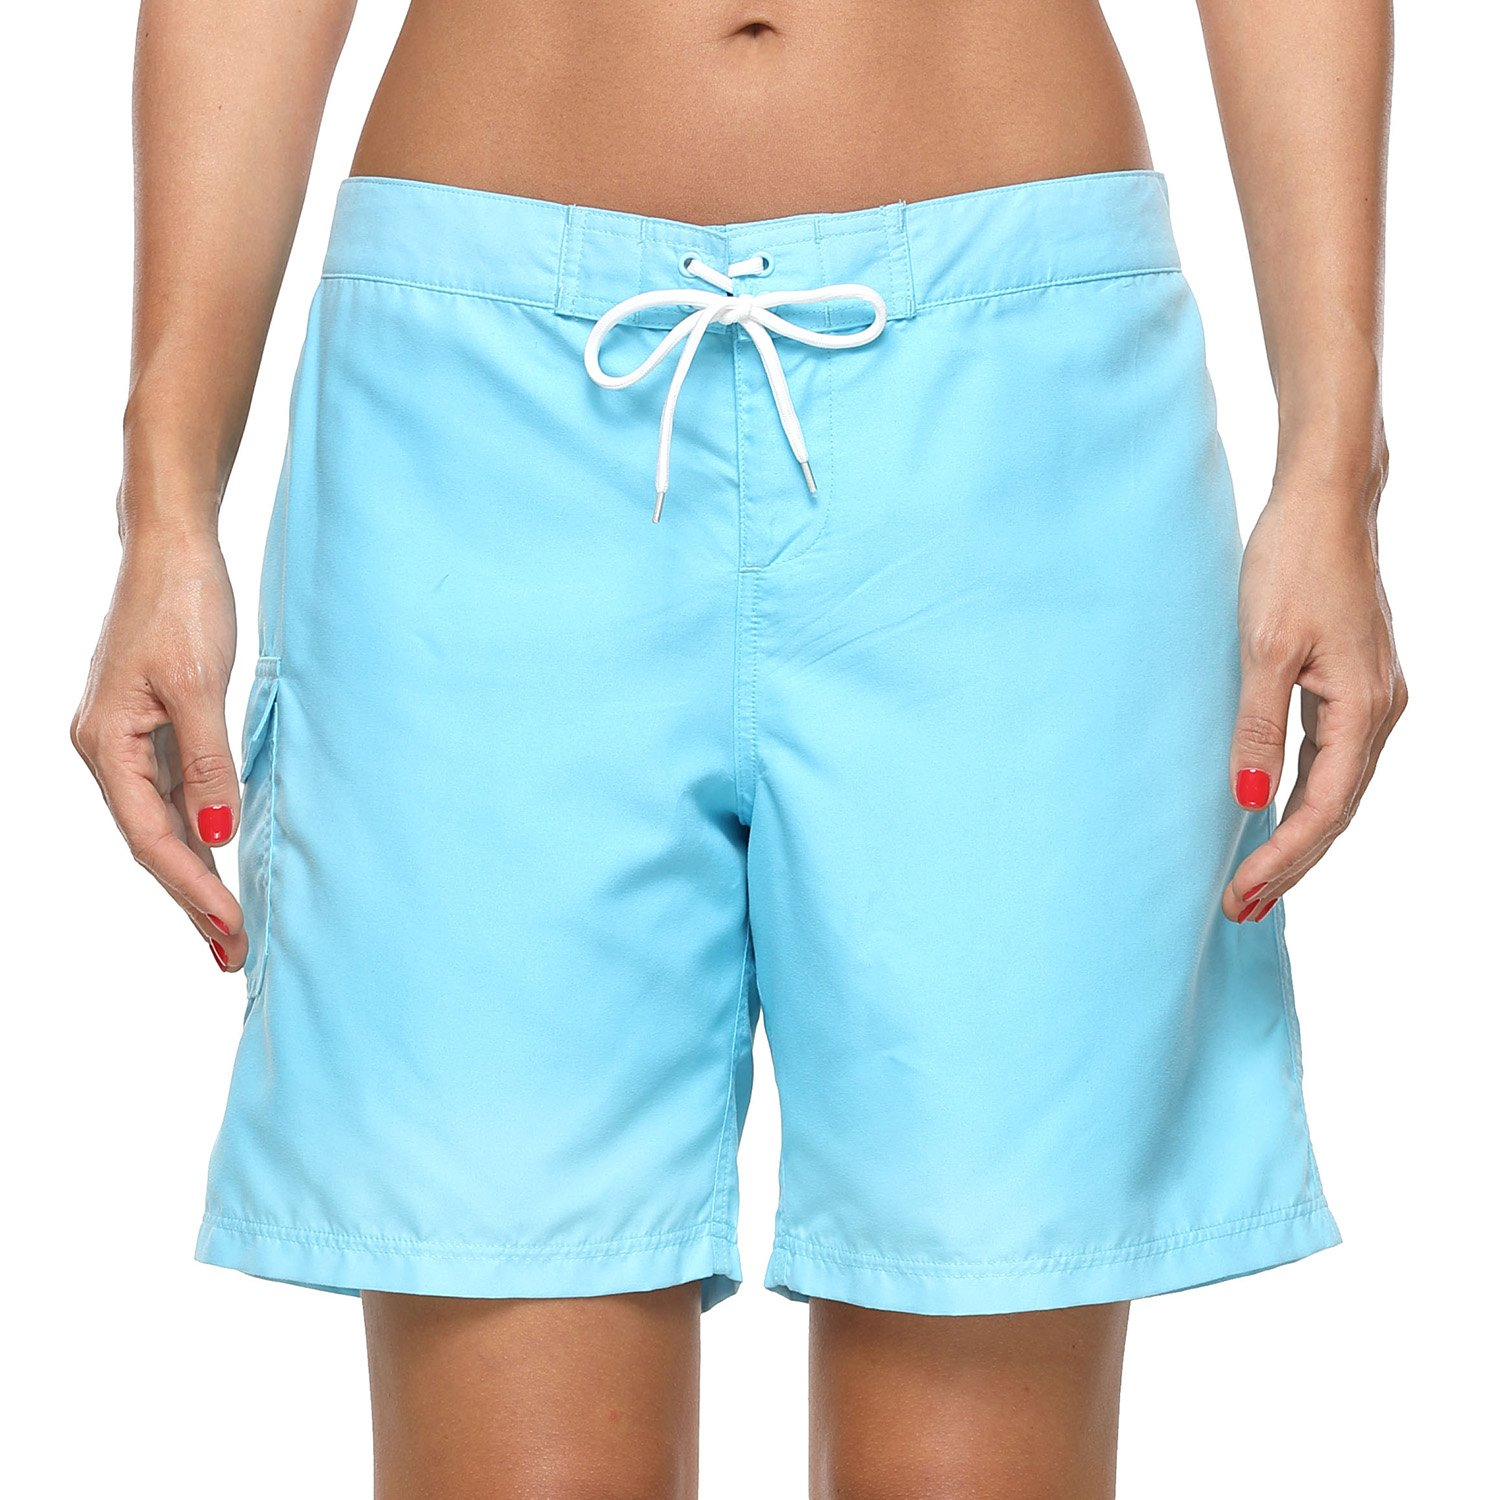 Charmo Women's Beach Board Shorts Swim Trunks Solid Boardshorts with Drawstring and Pocket